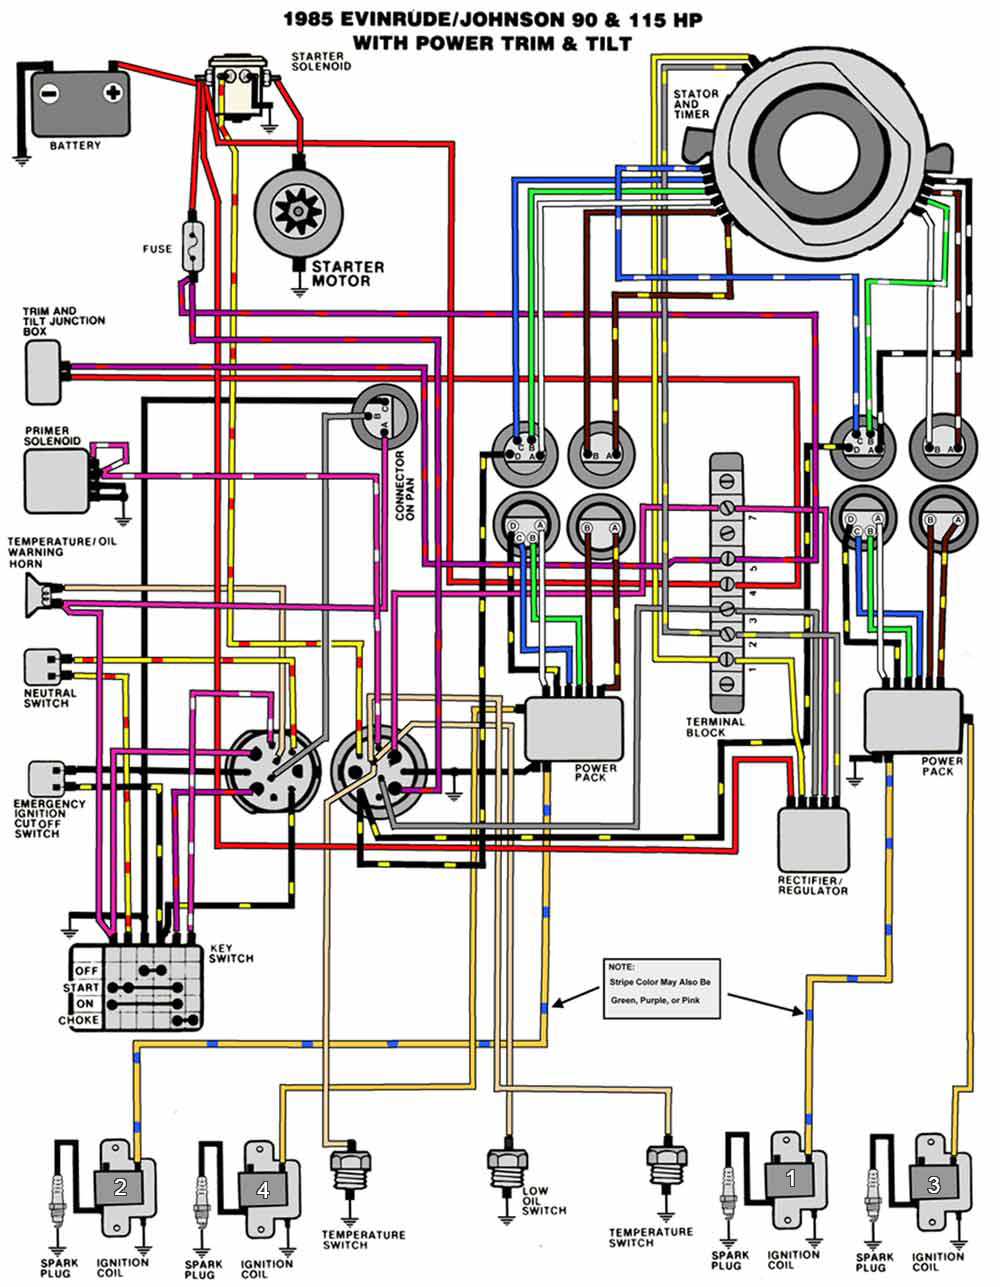 76 evinrude wiring diagram 35 hp wiring diagram specialties